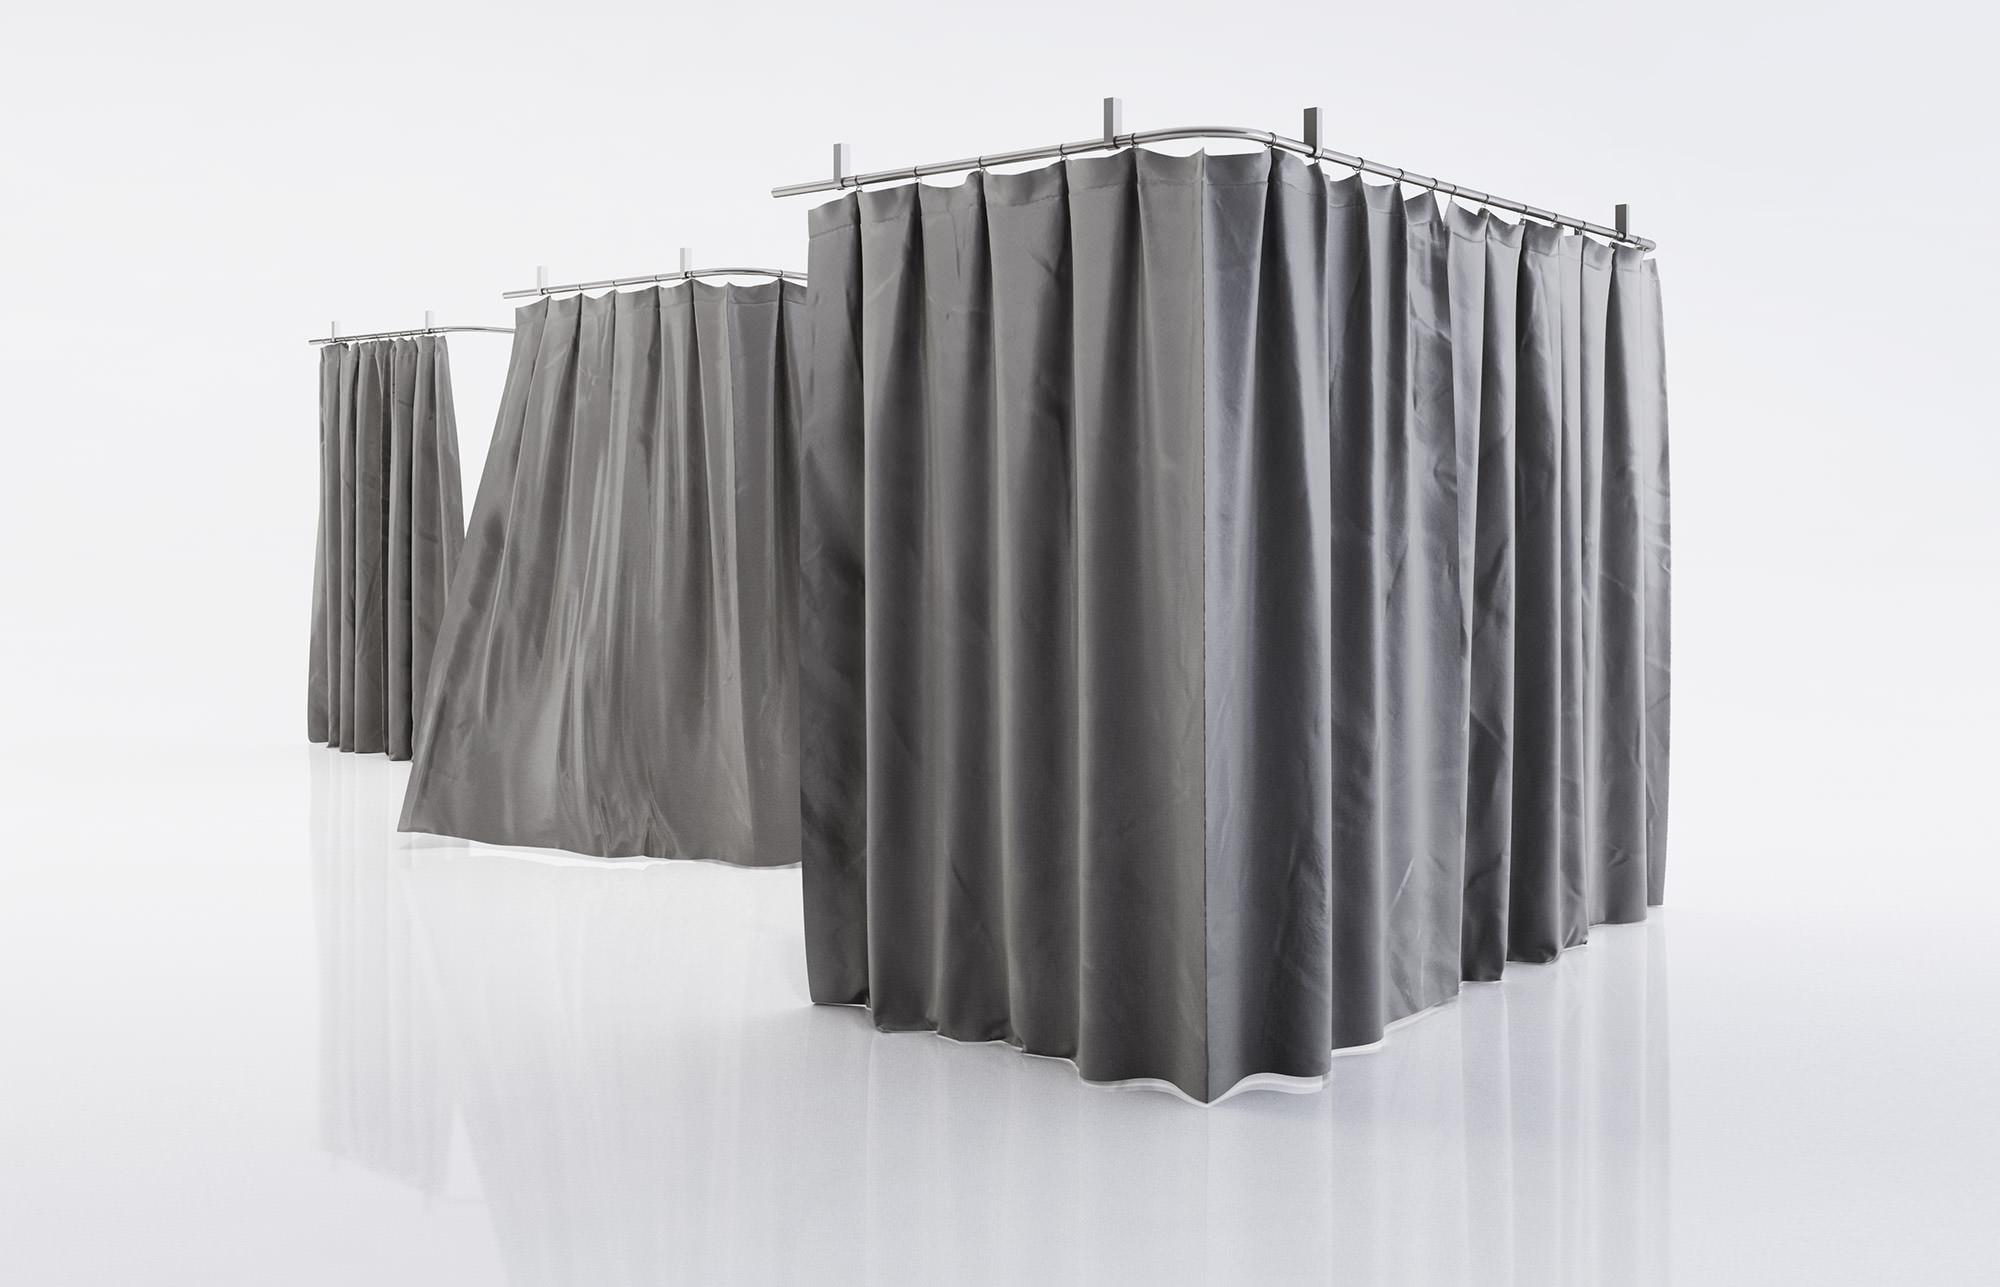 Black Shower Curtains 3d Model Max Obj Fbx C4d 1